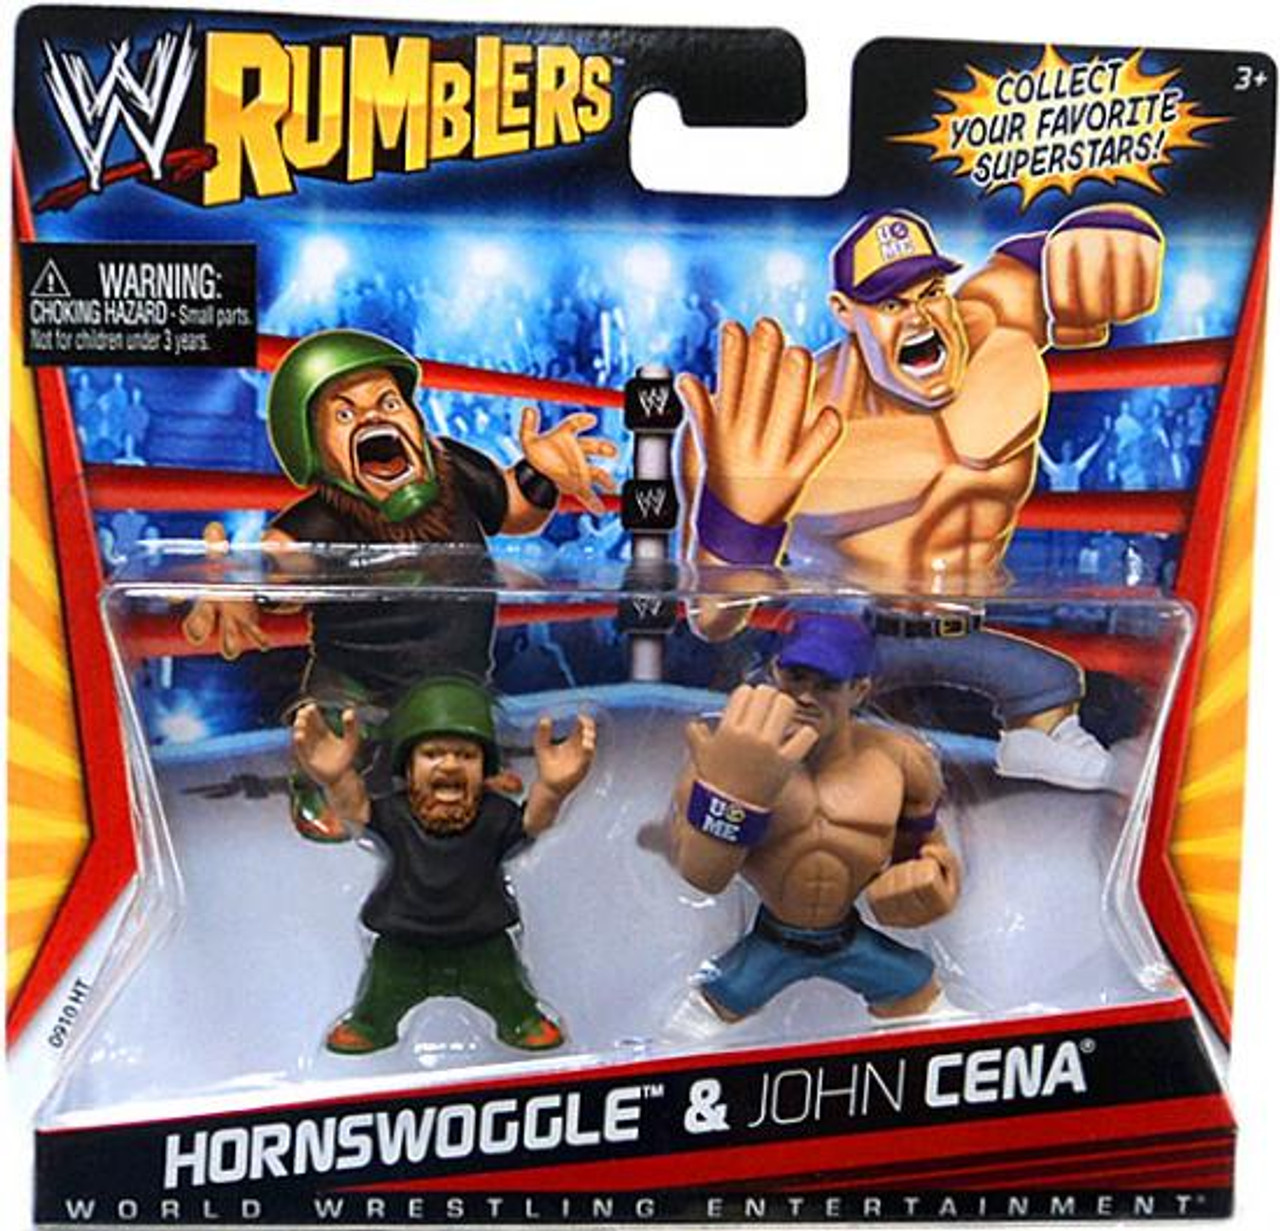 WWE Wrestling Rumblers Series 1 Hornswoggle & John Cena Mini Figure 2-Pack